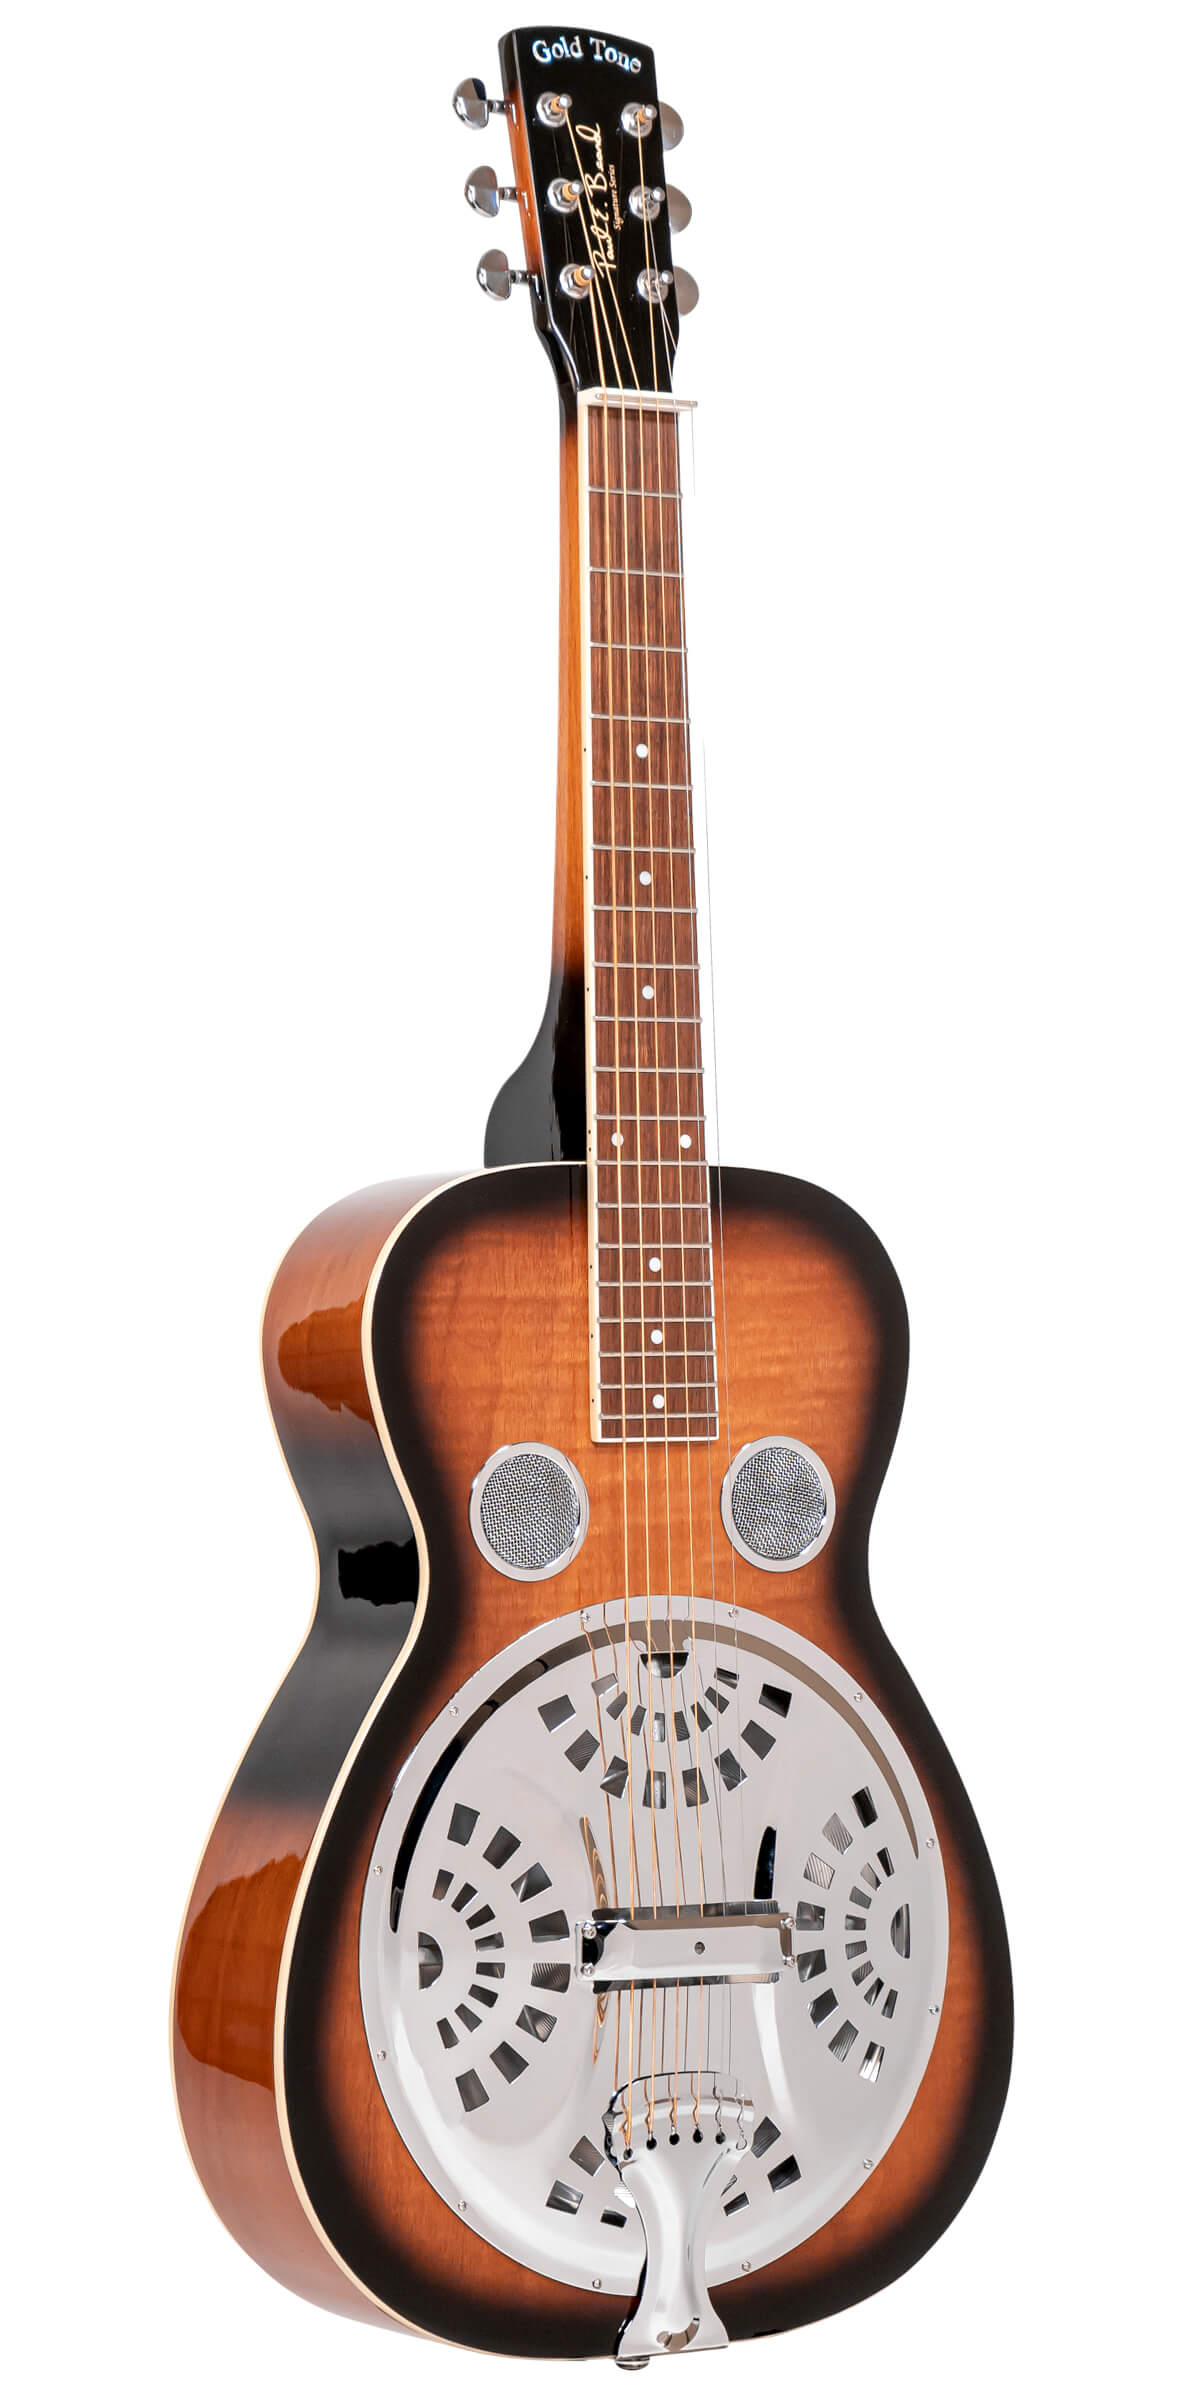 PBS: Paul Beard Resonator Squareneck Guitar